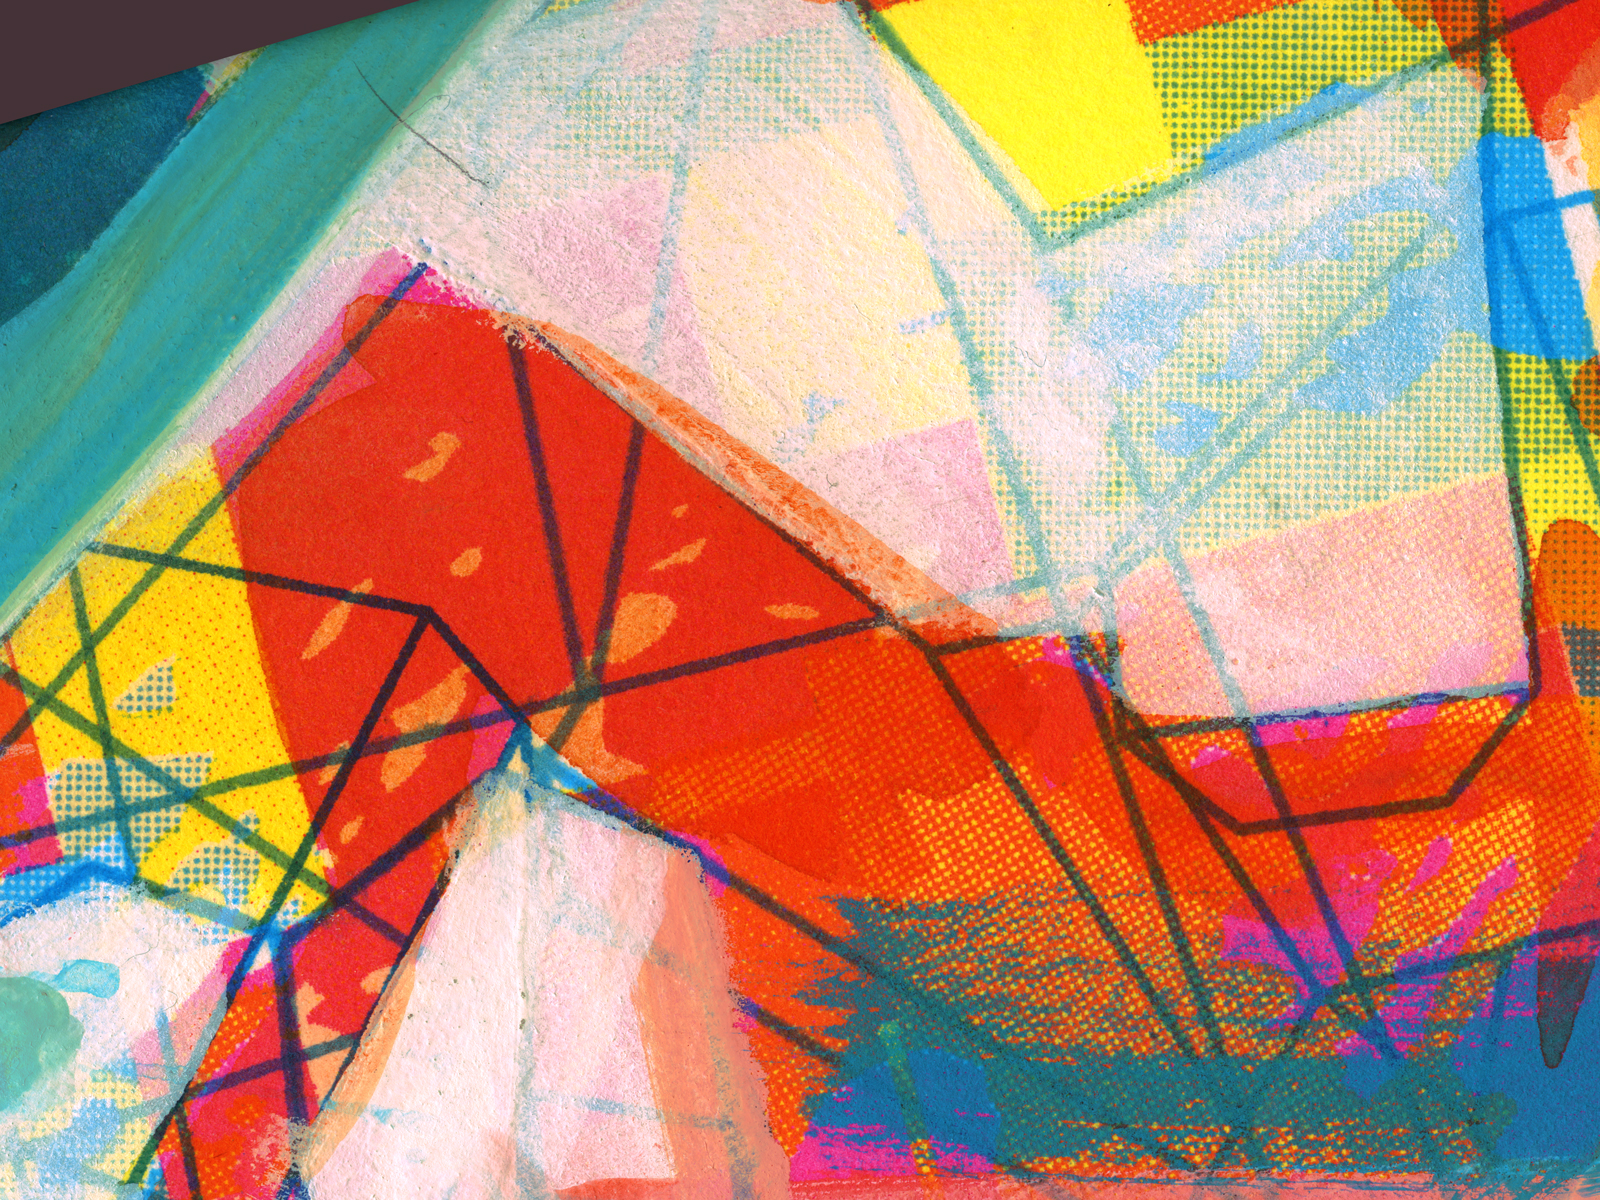 digital space: abstract spaces/landscapes